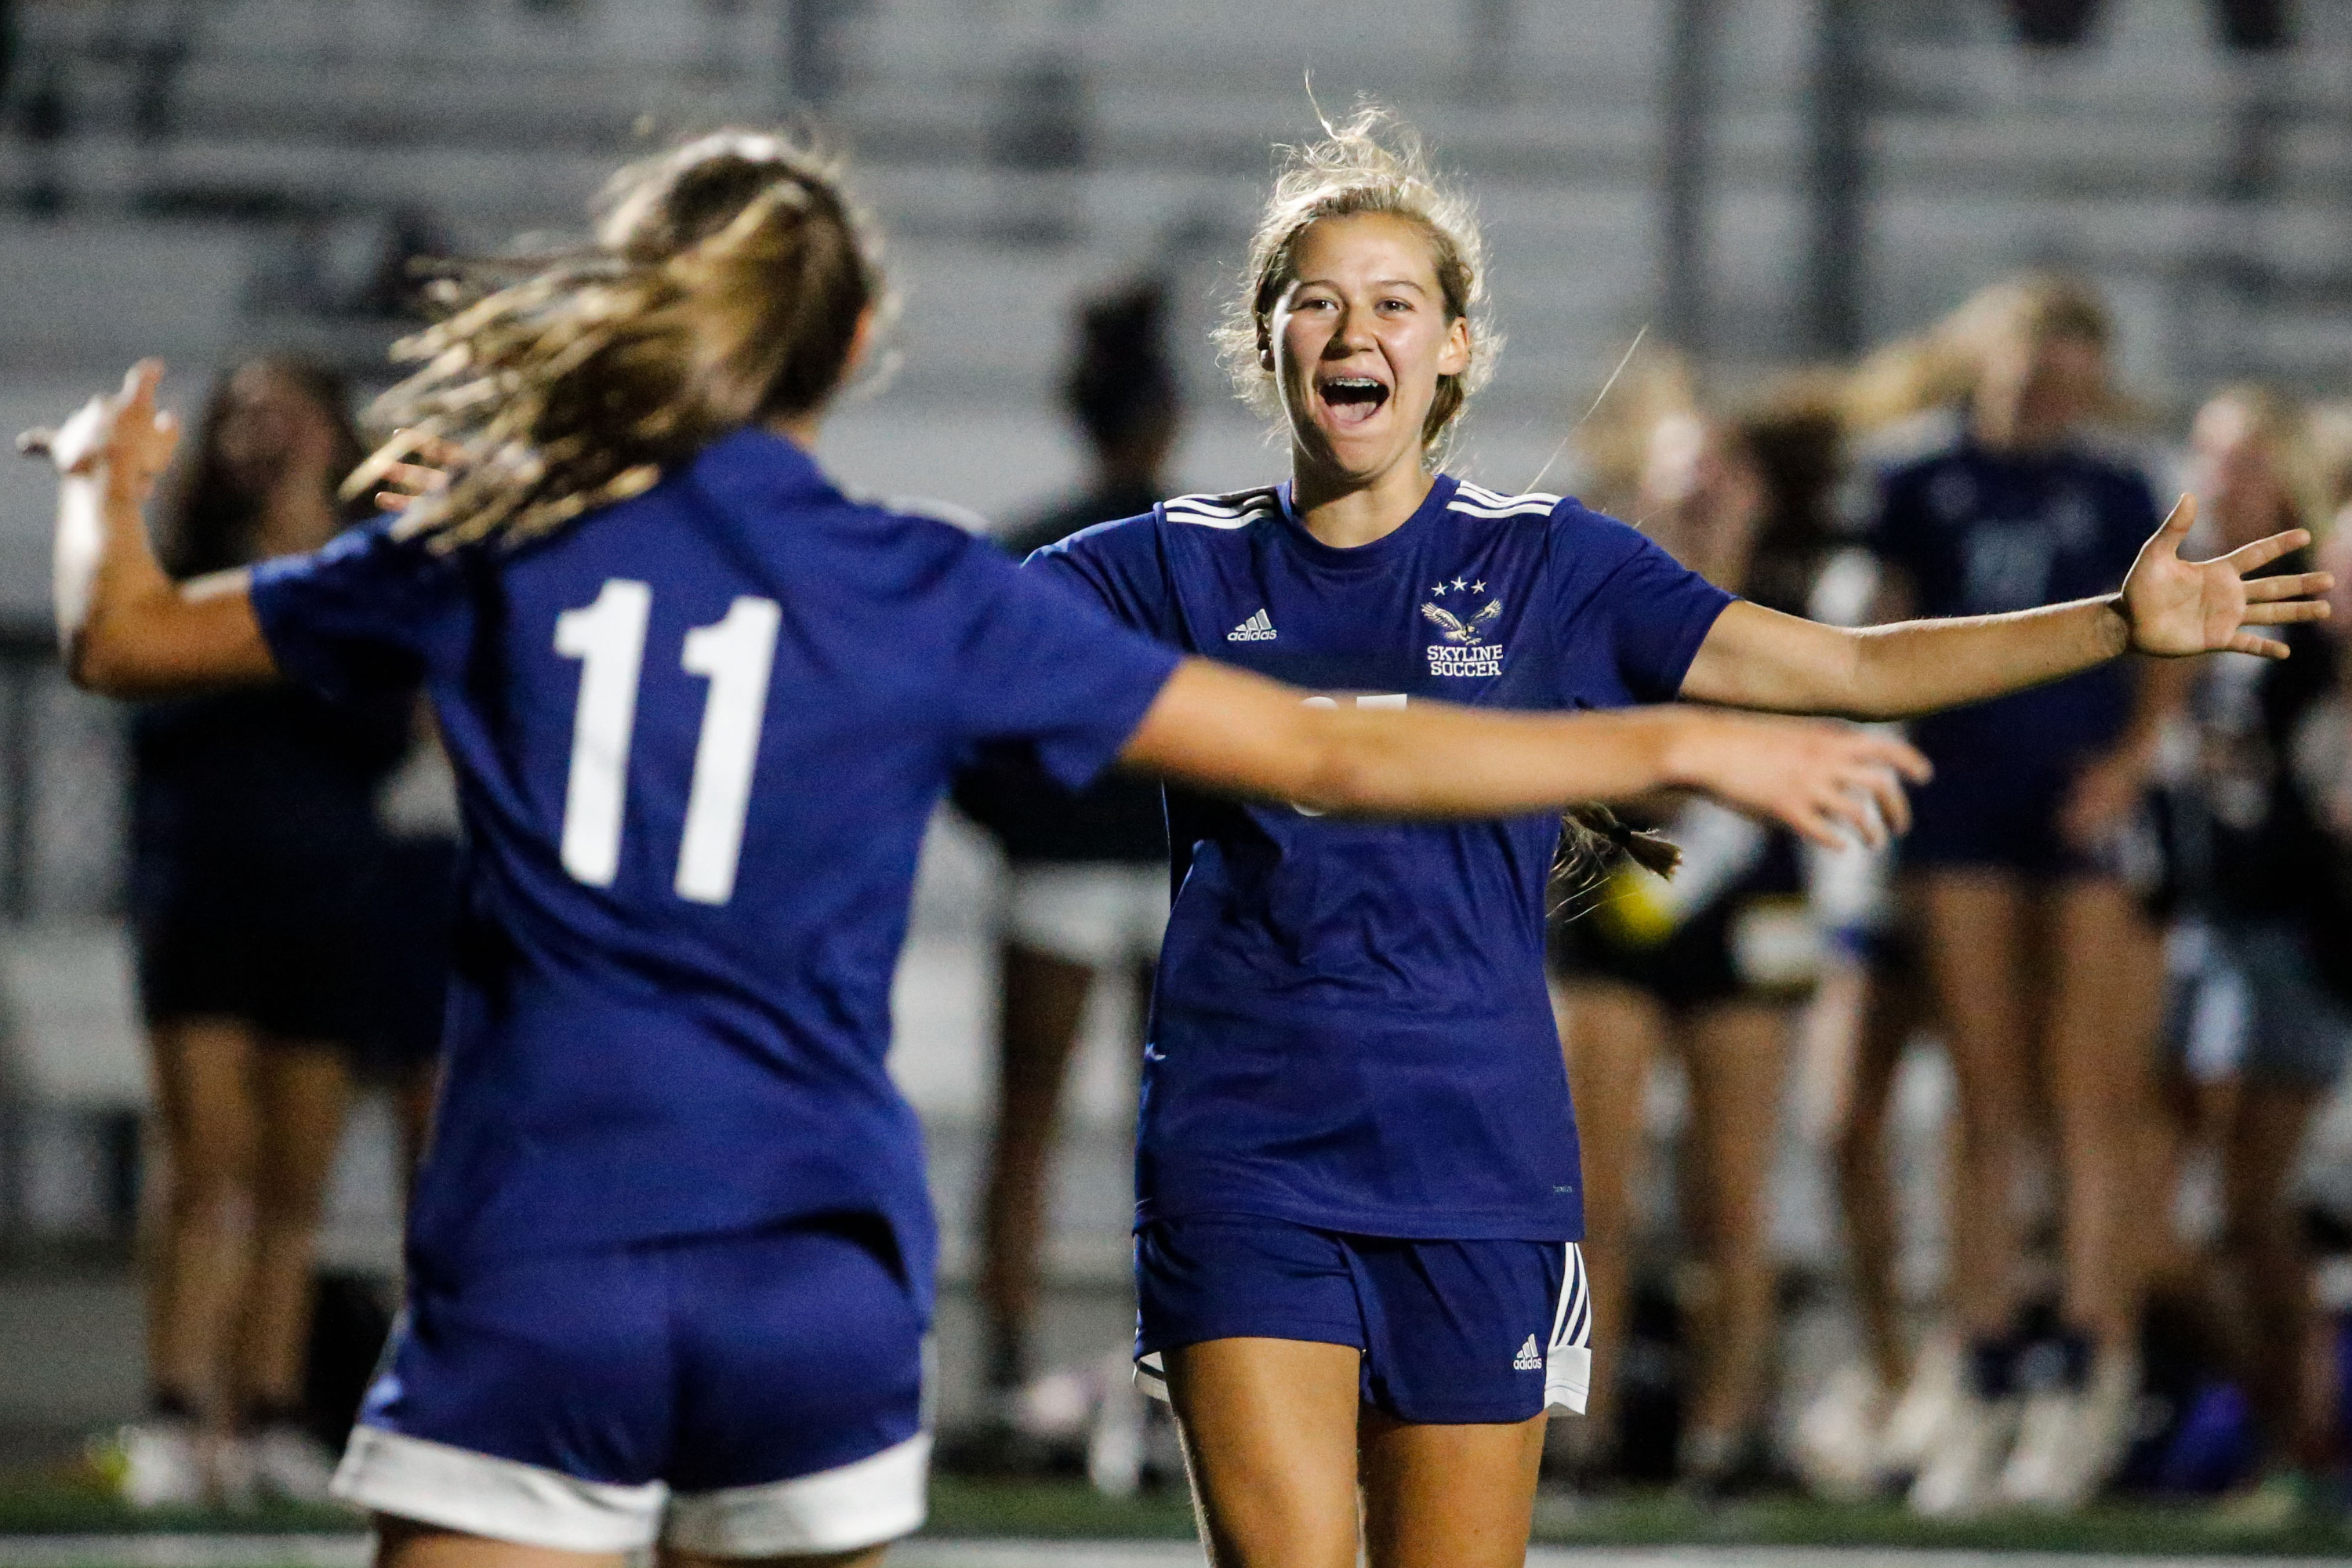 Skyline's Lily Hall, right, and Lily Boyden celebrate the team's third goal duringa high school girls soccer game at Skyline High School in Salt Lake City on Thursday, Sept. 16, 2021.